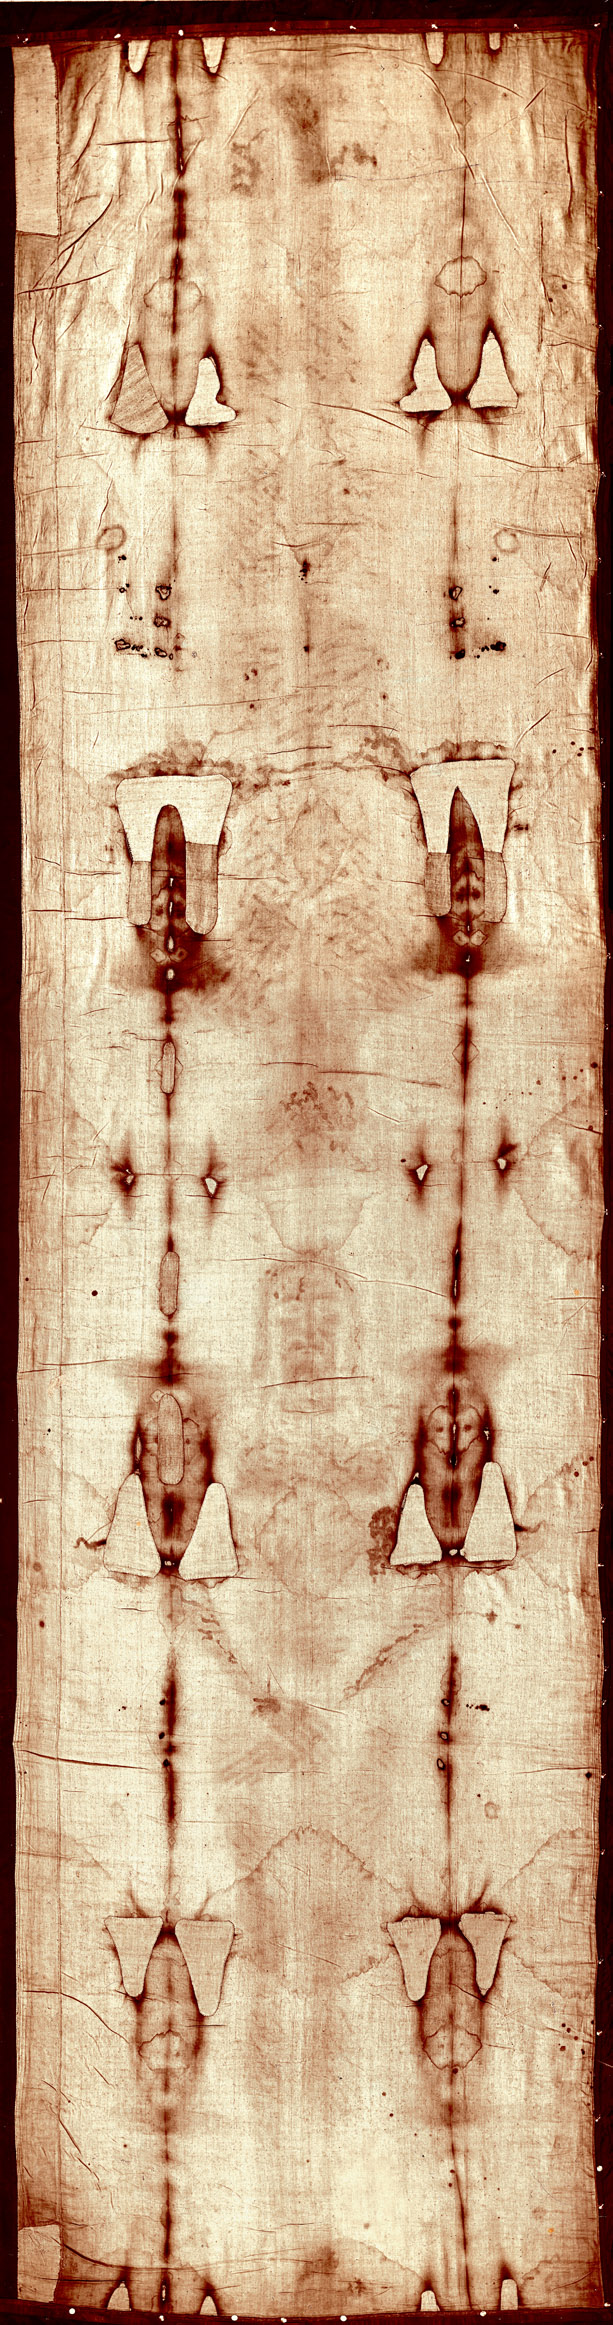 The shroud of Turin EXTRAORDINARY evidence of Christ's resurrection 2022